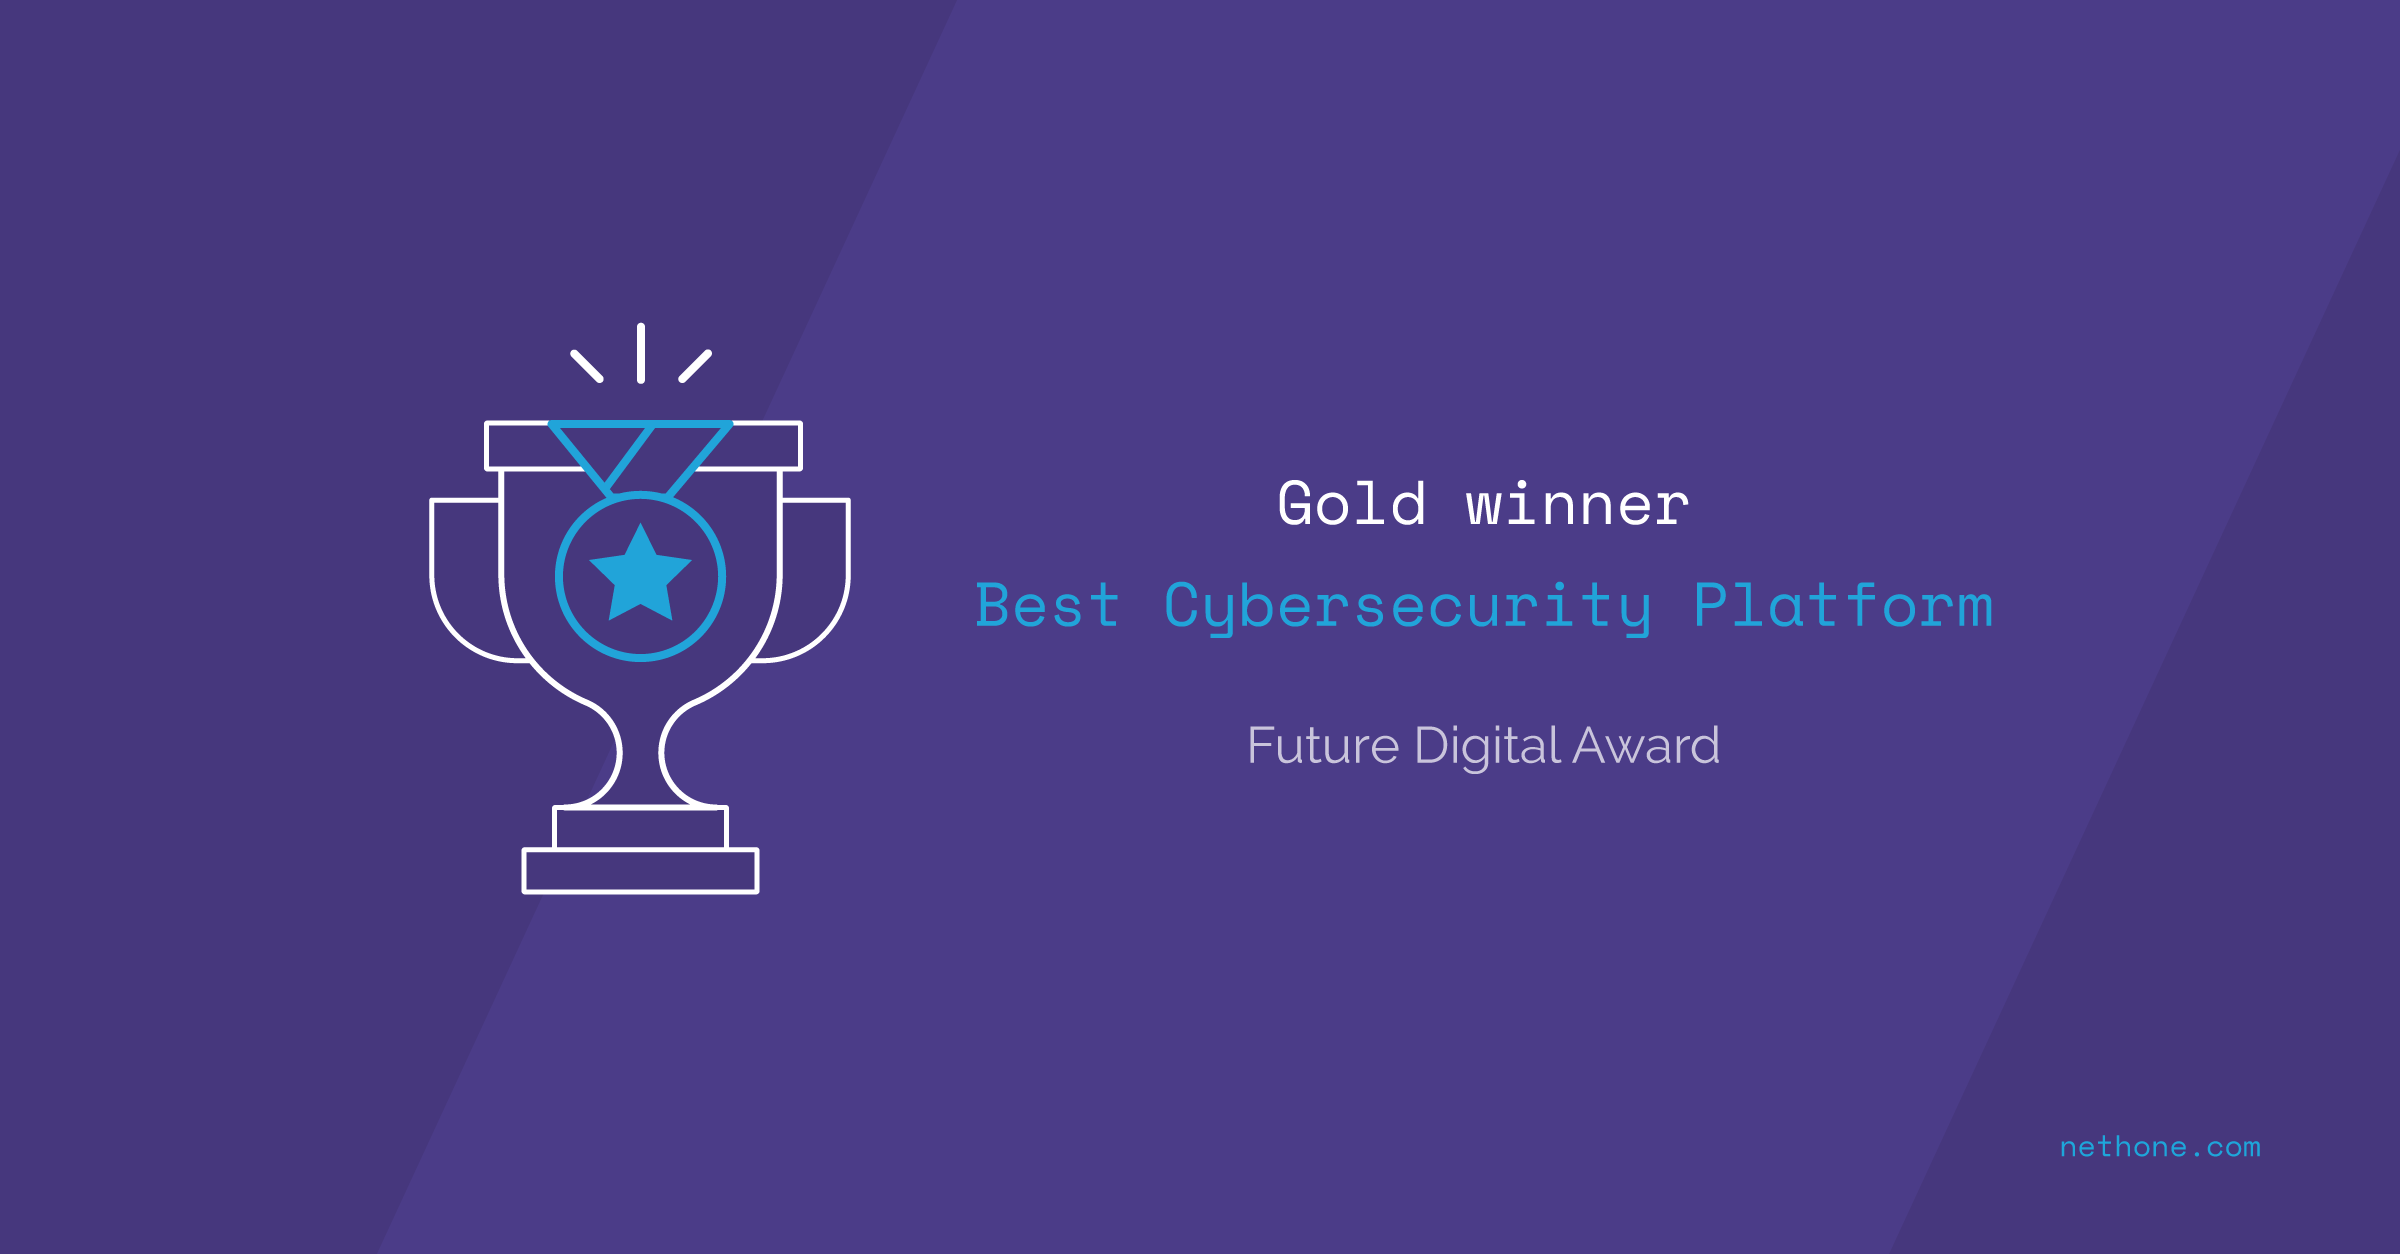 Future Digital Award